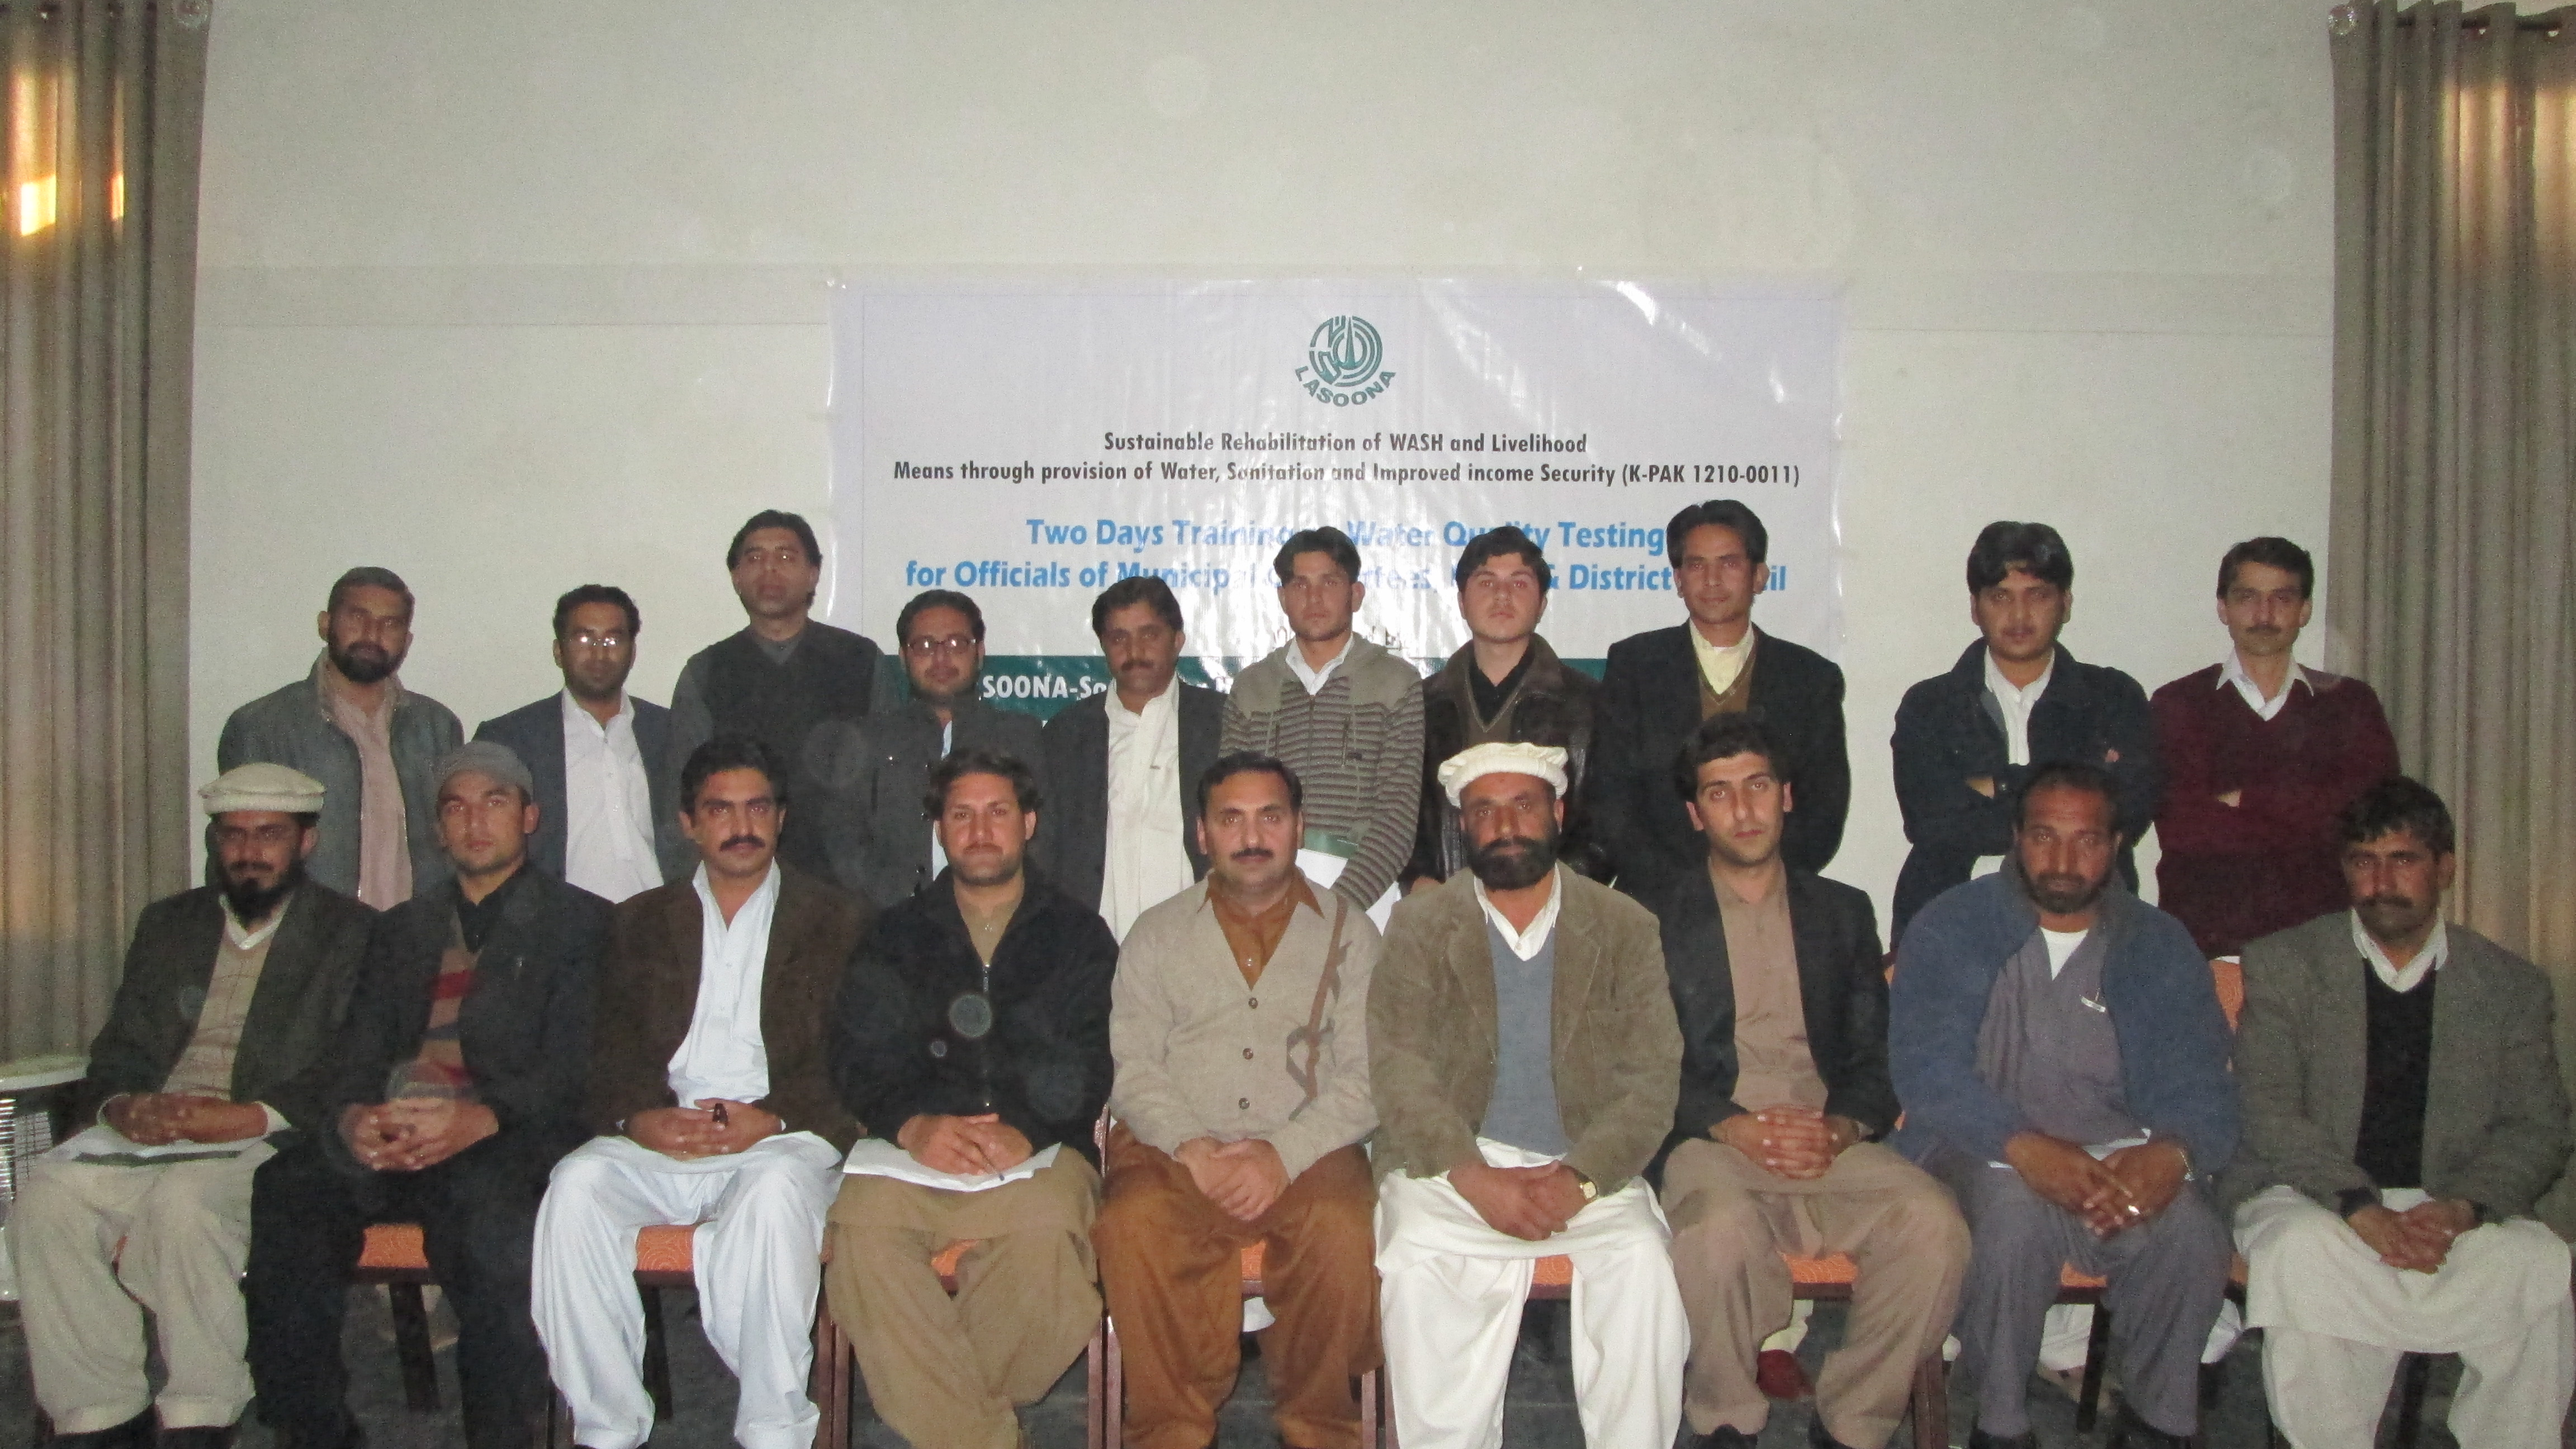 02 Days training on water quality testing for government officials held in Mingora (Jan 29-30, 2014)